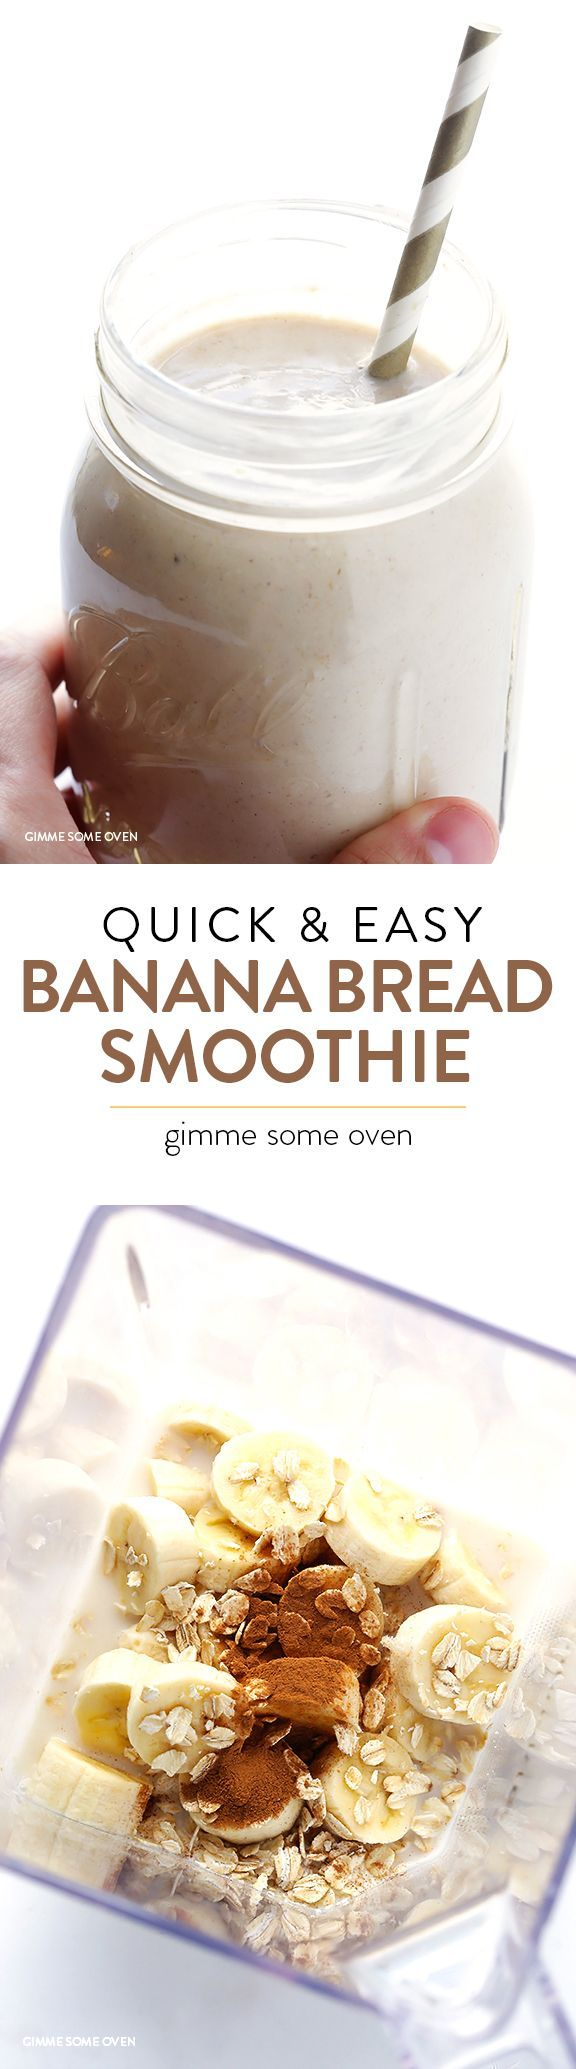 Banana Bread Smoothie - get the flavor without the fat and processed ingredients.